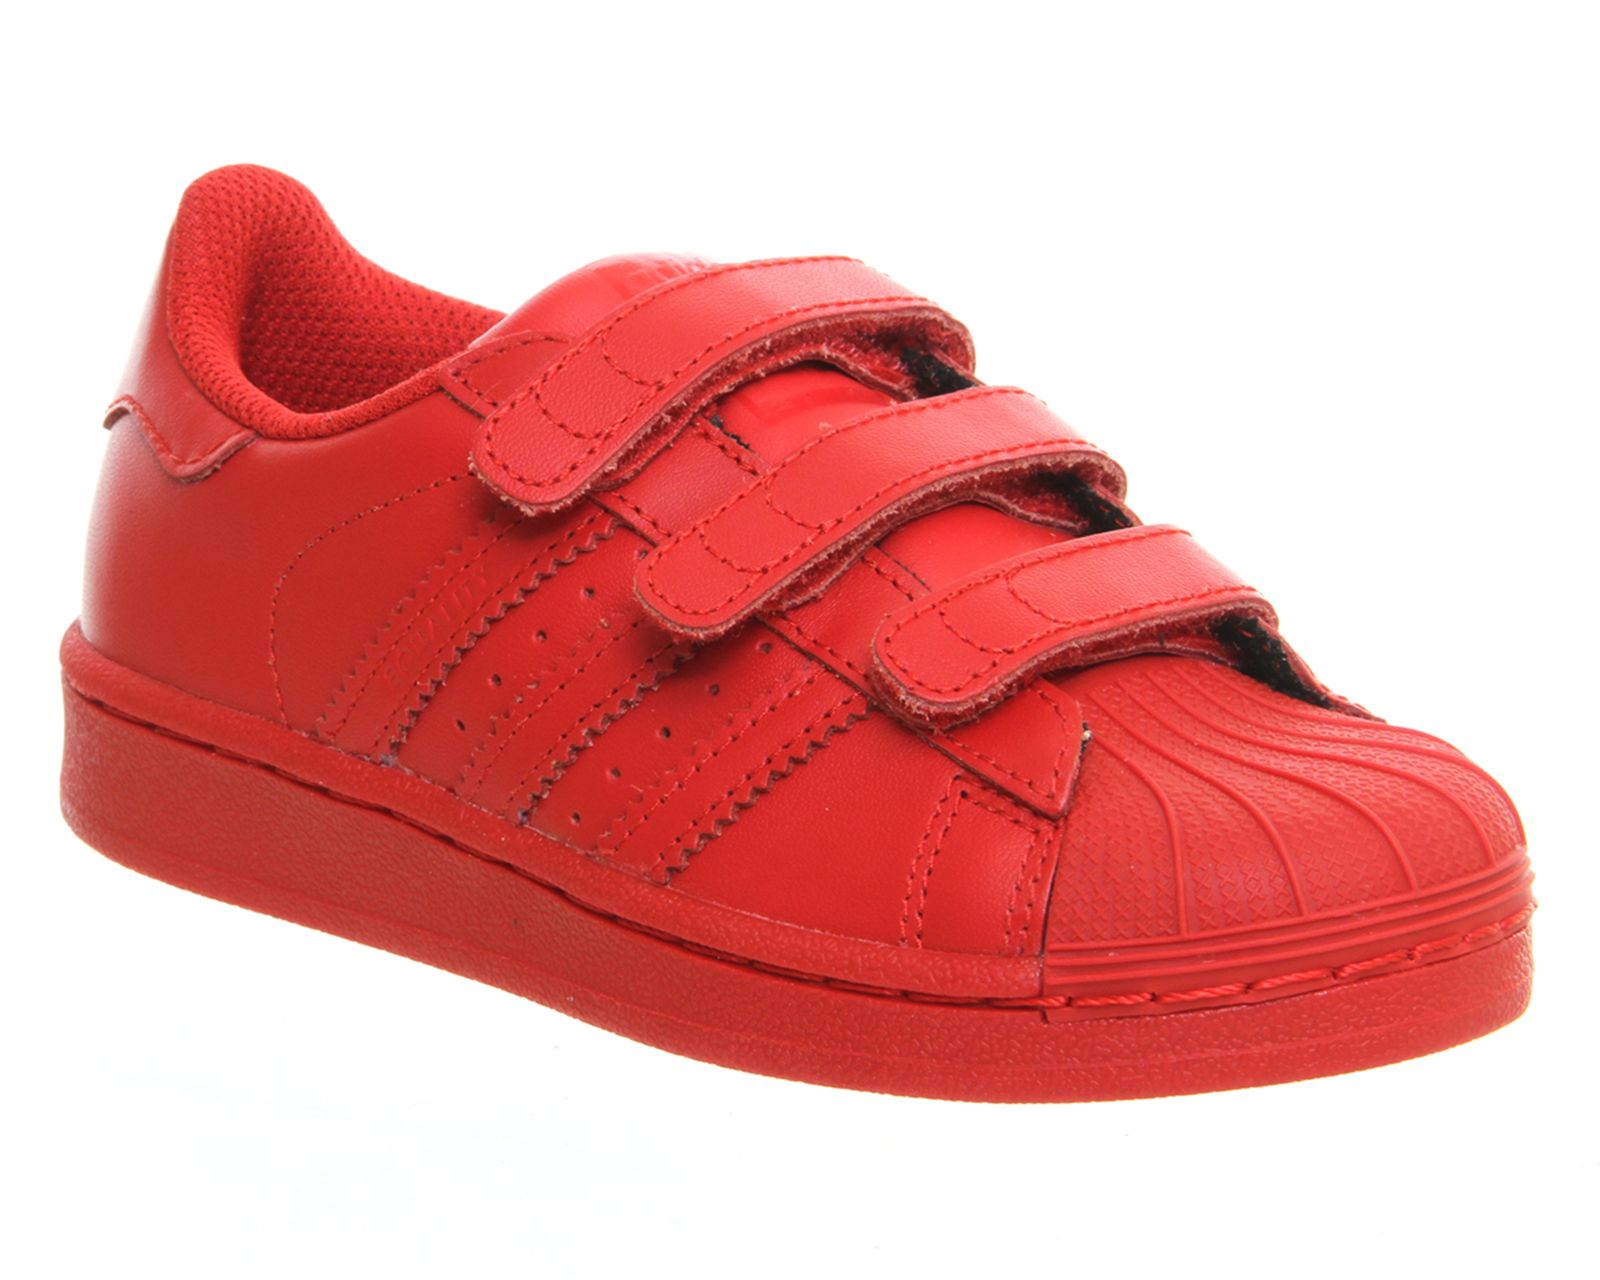 Adidas Superstar Kids Pharrell Supercolor Red - Unisex